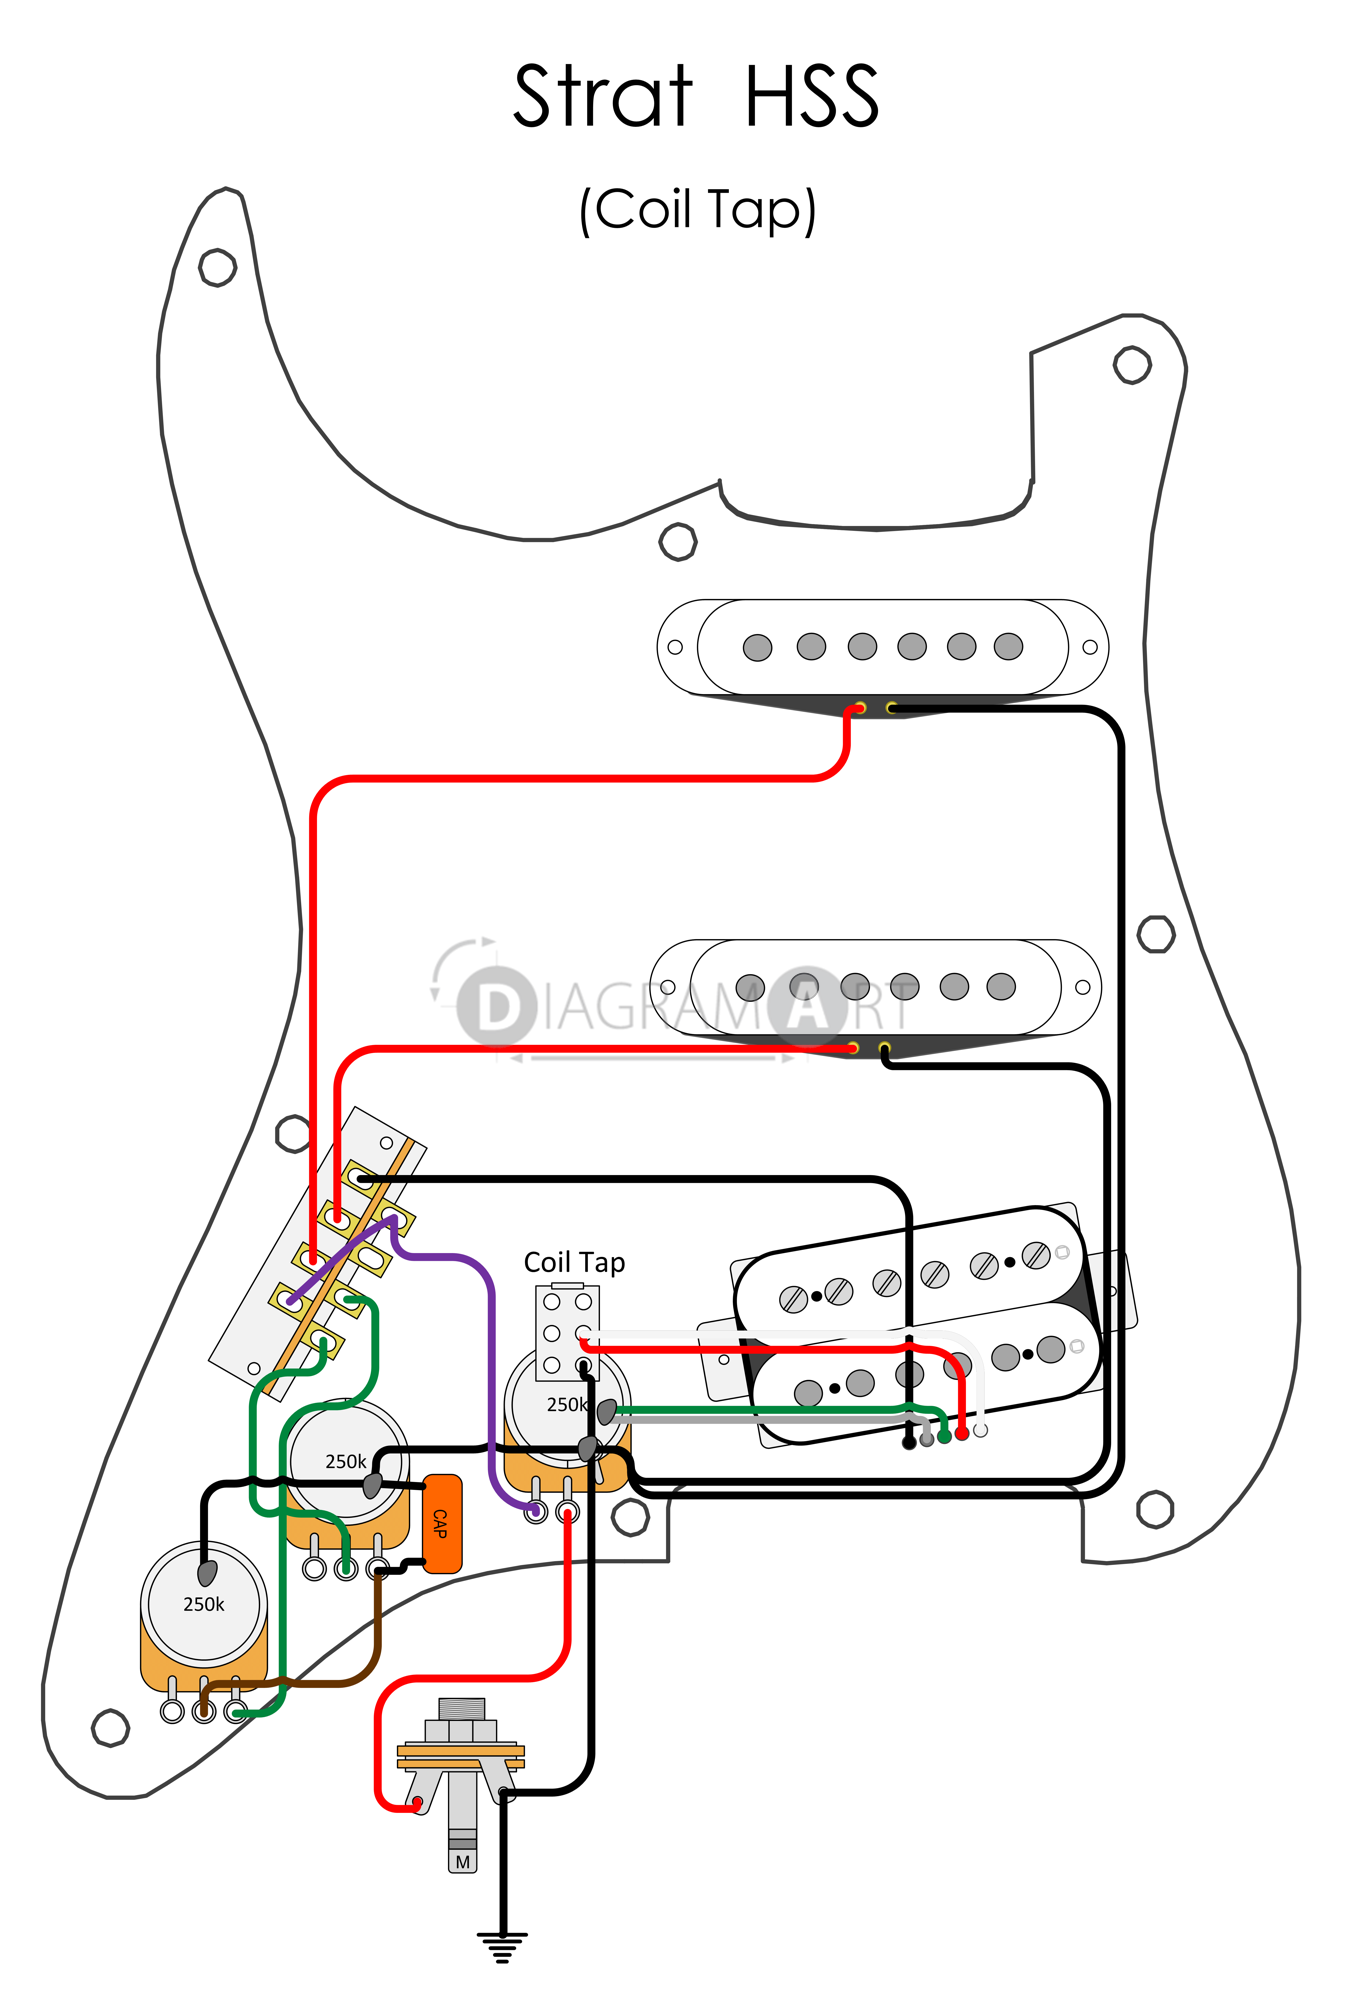 Jackson Hss Wiring Diagram - Wiring Diagram & Cable Management on